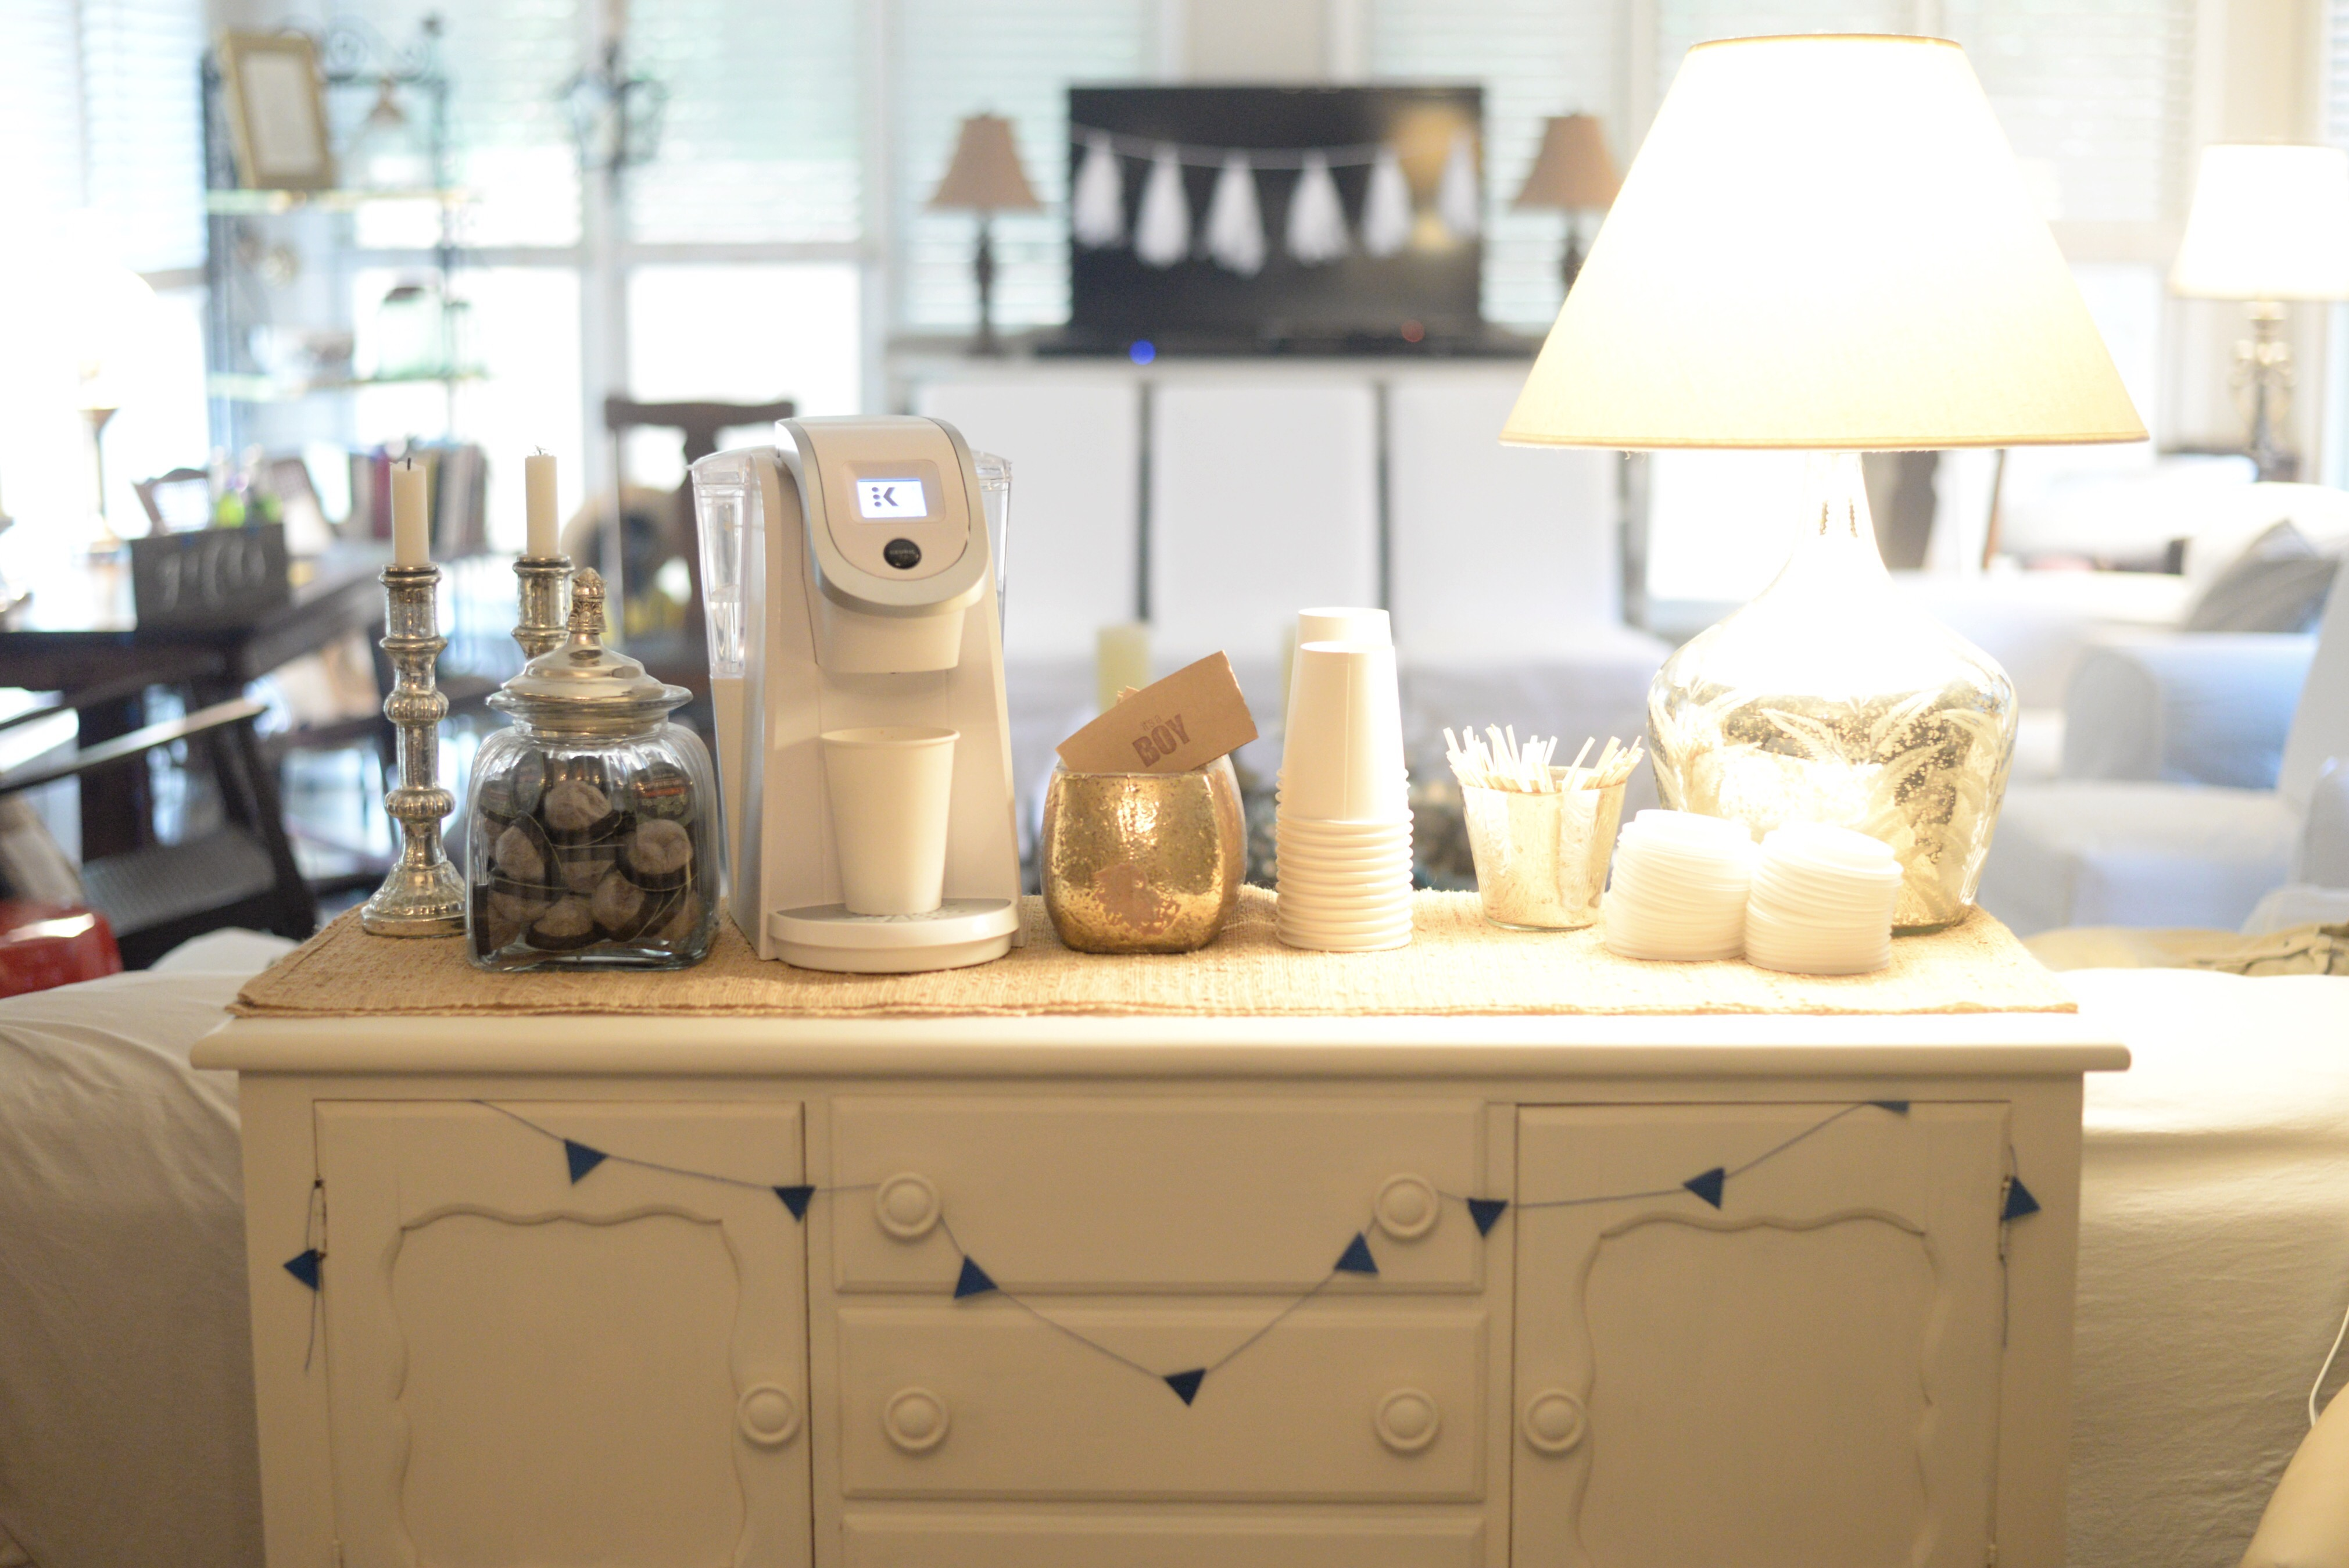 The Coffee Bar Was One Of My Favorite Parts I Cant Wait To Incorporate This Into Another Party It So Easy Pack Up Keurig K250 And Set